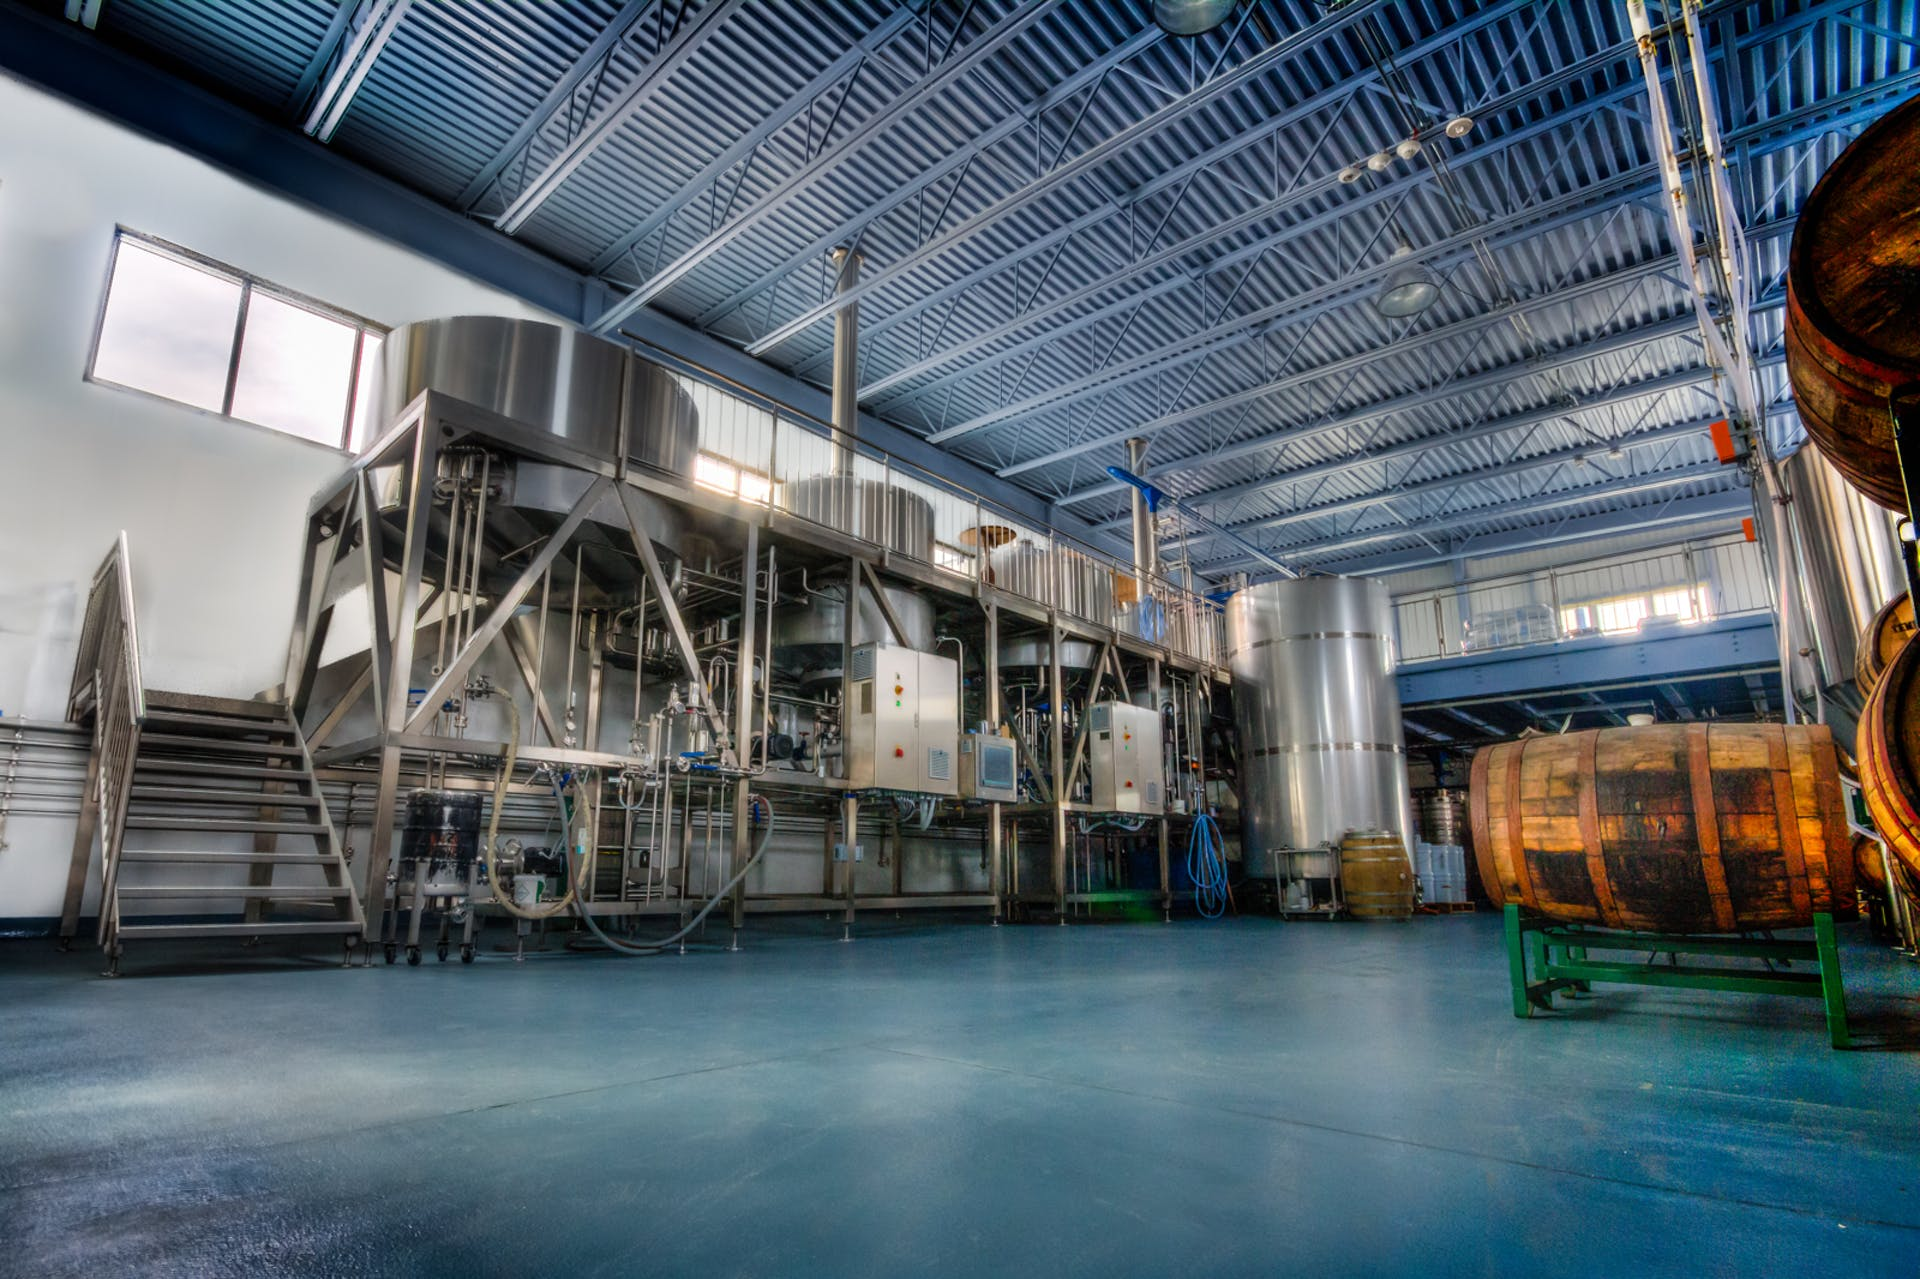 Inside the brewhouse